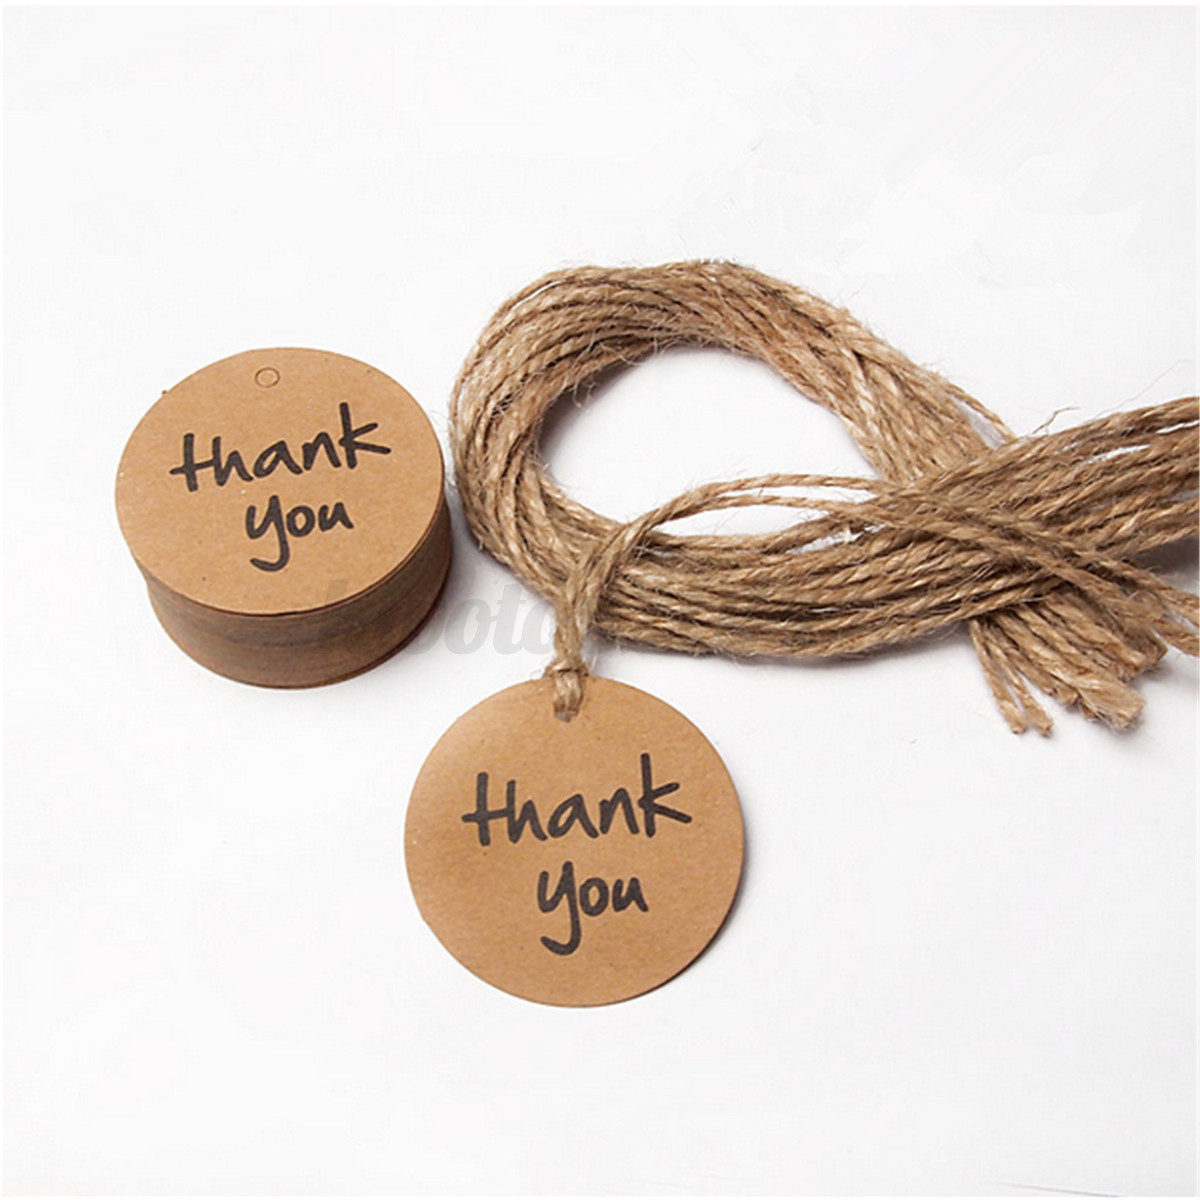 Wedding Favor Tags With String : ... Kraft Paper Hang Tags Brown Wedding Party Favor Gift Label + Strings